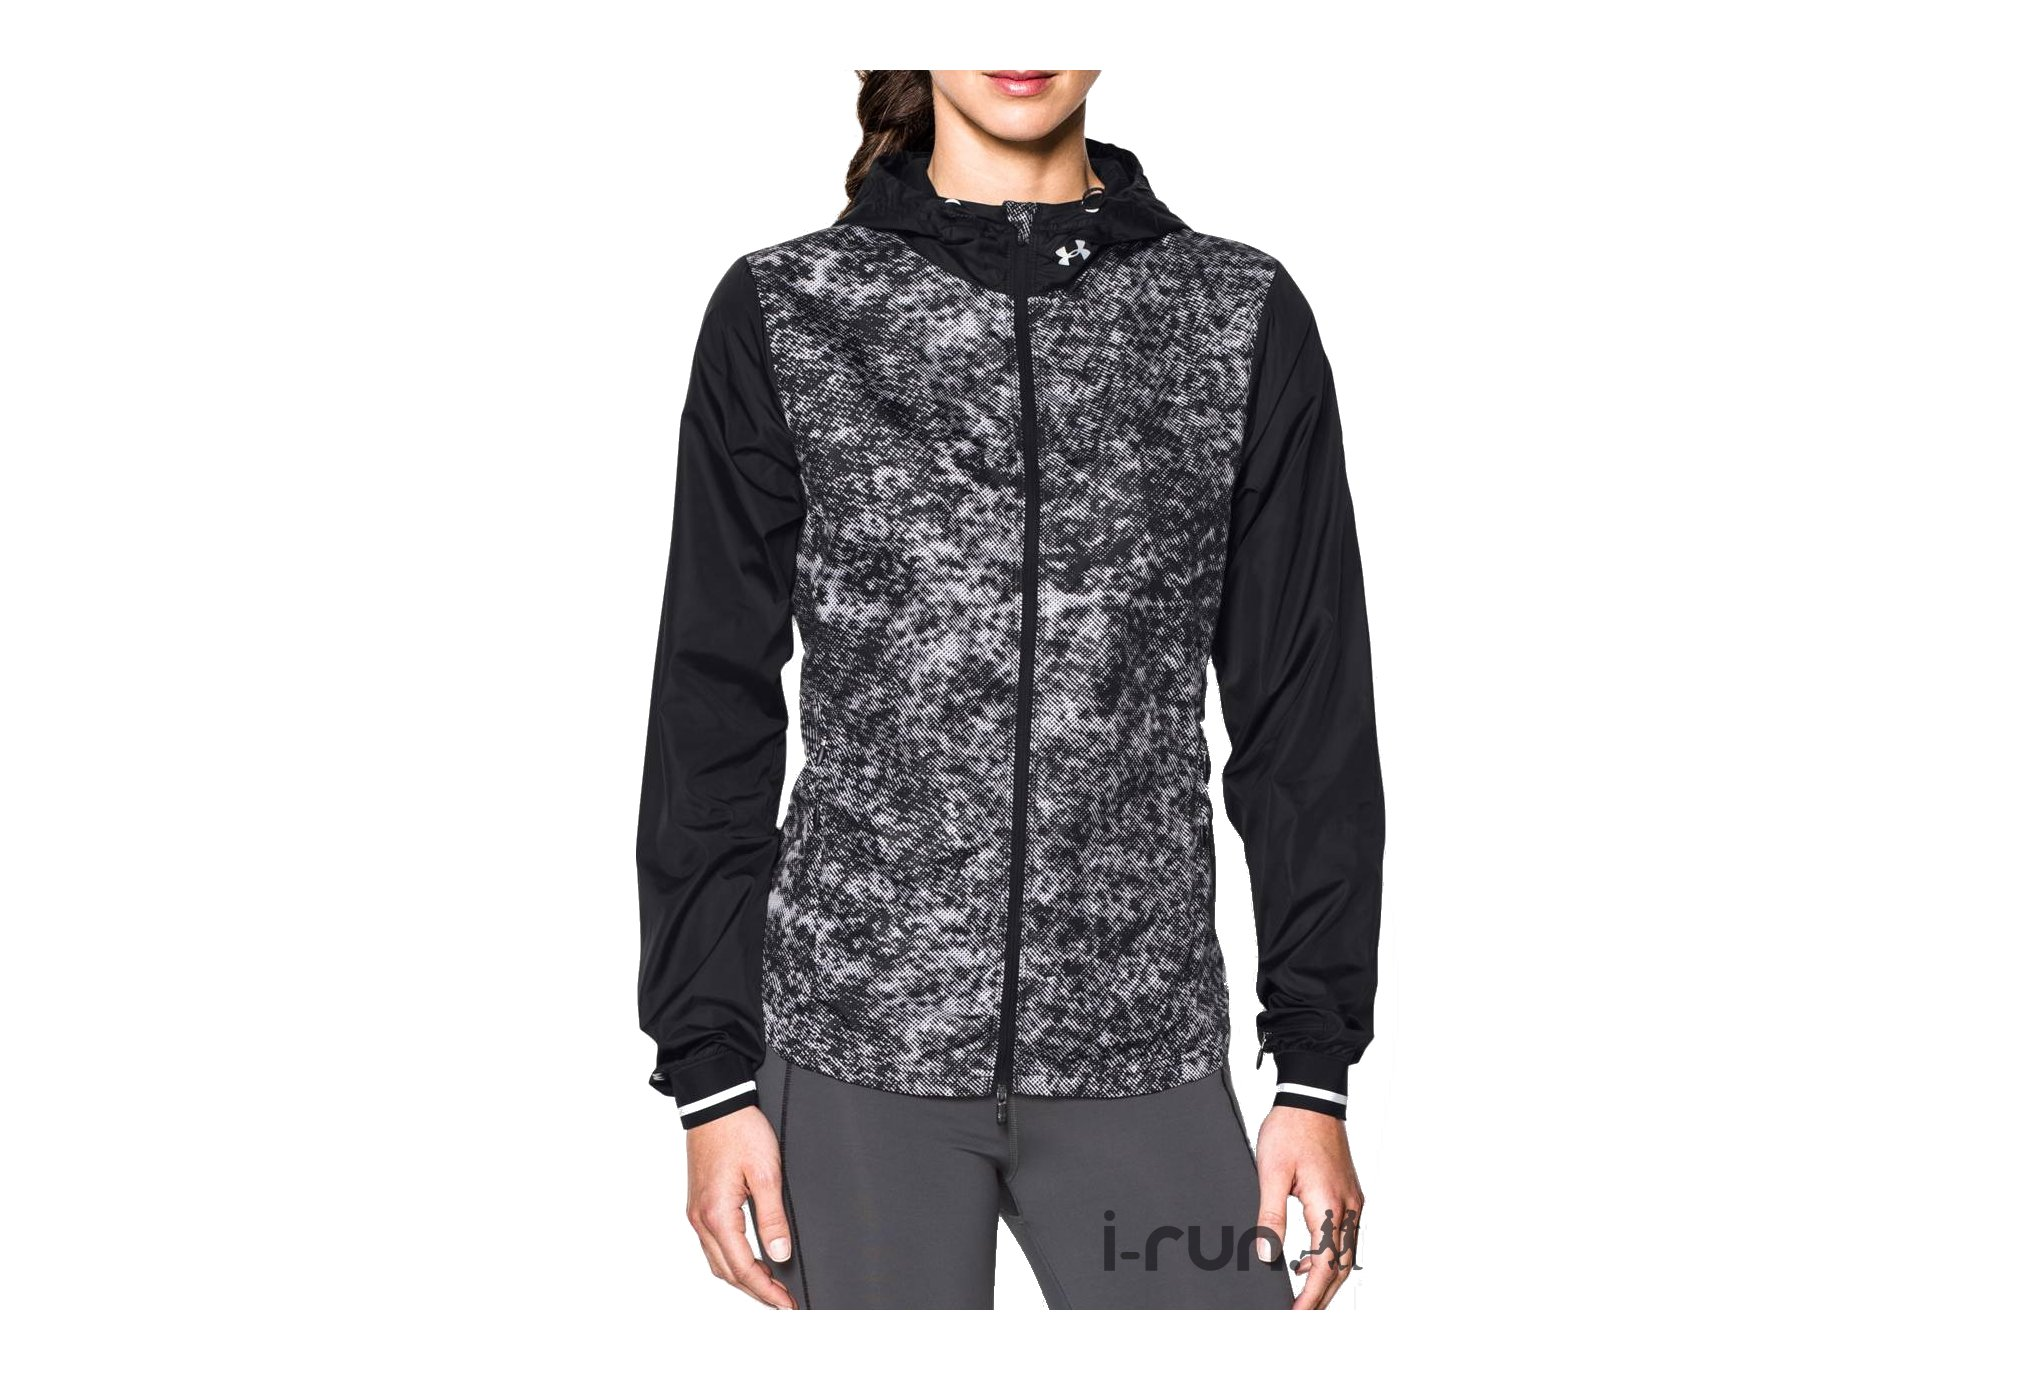 Under Armour Veste Storm Layered Up Printed W Diététique Vêtements femme